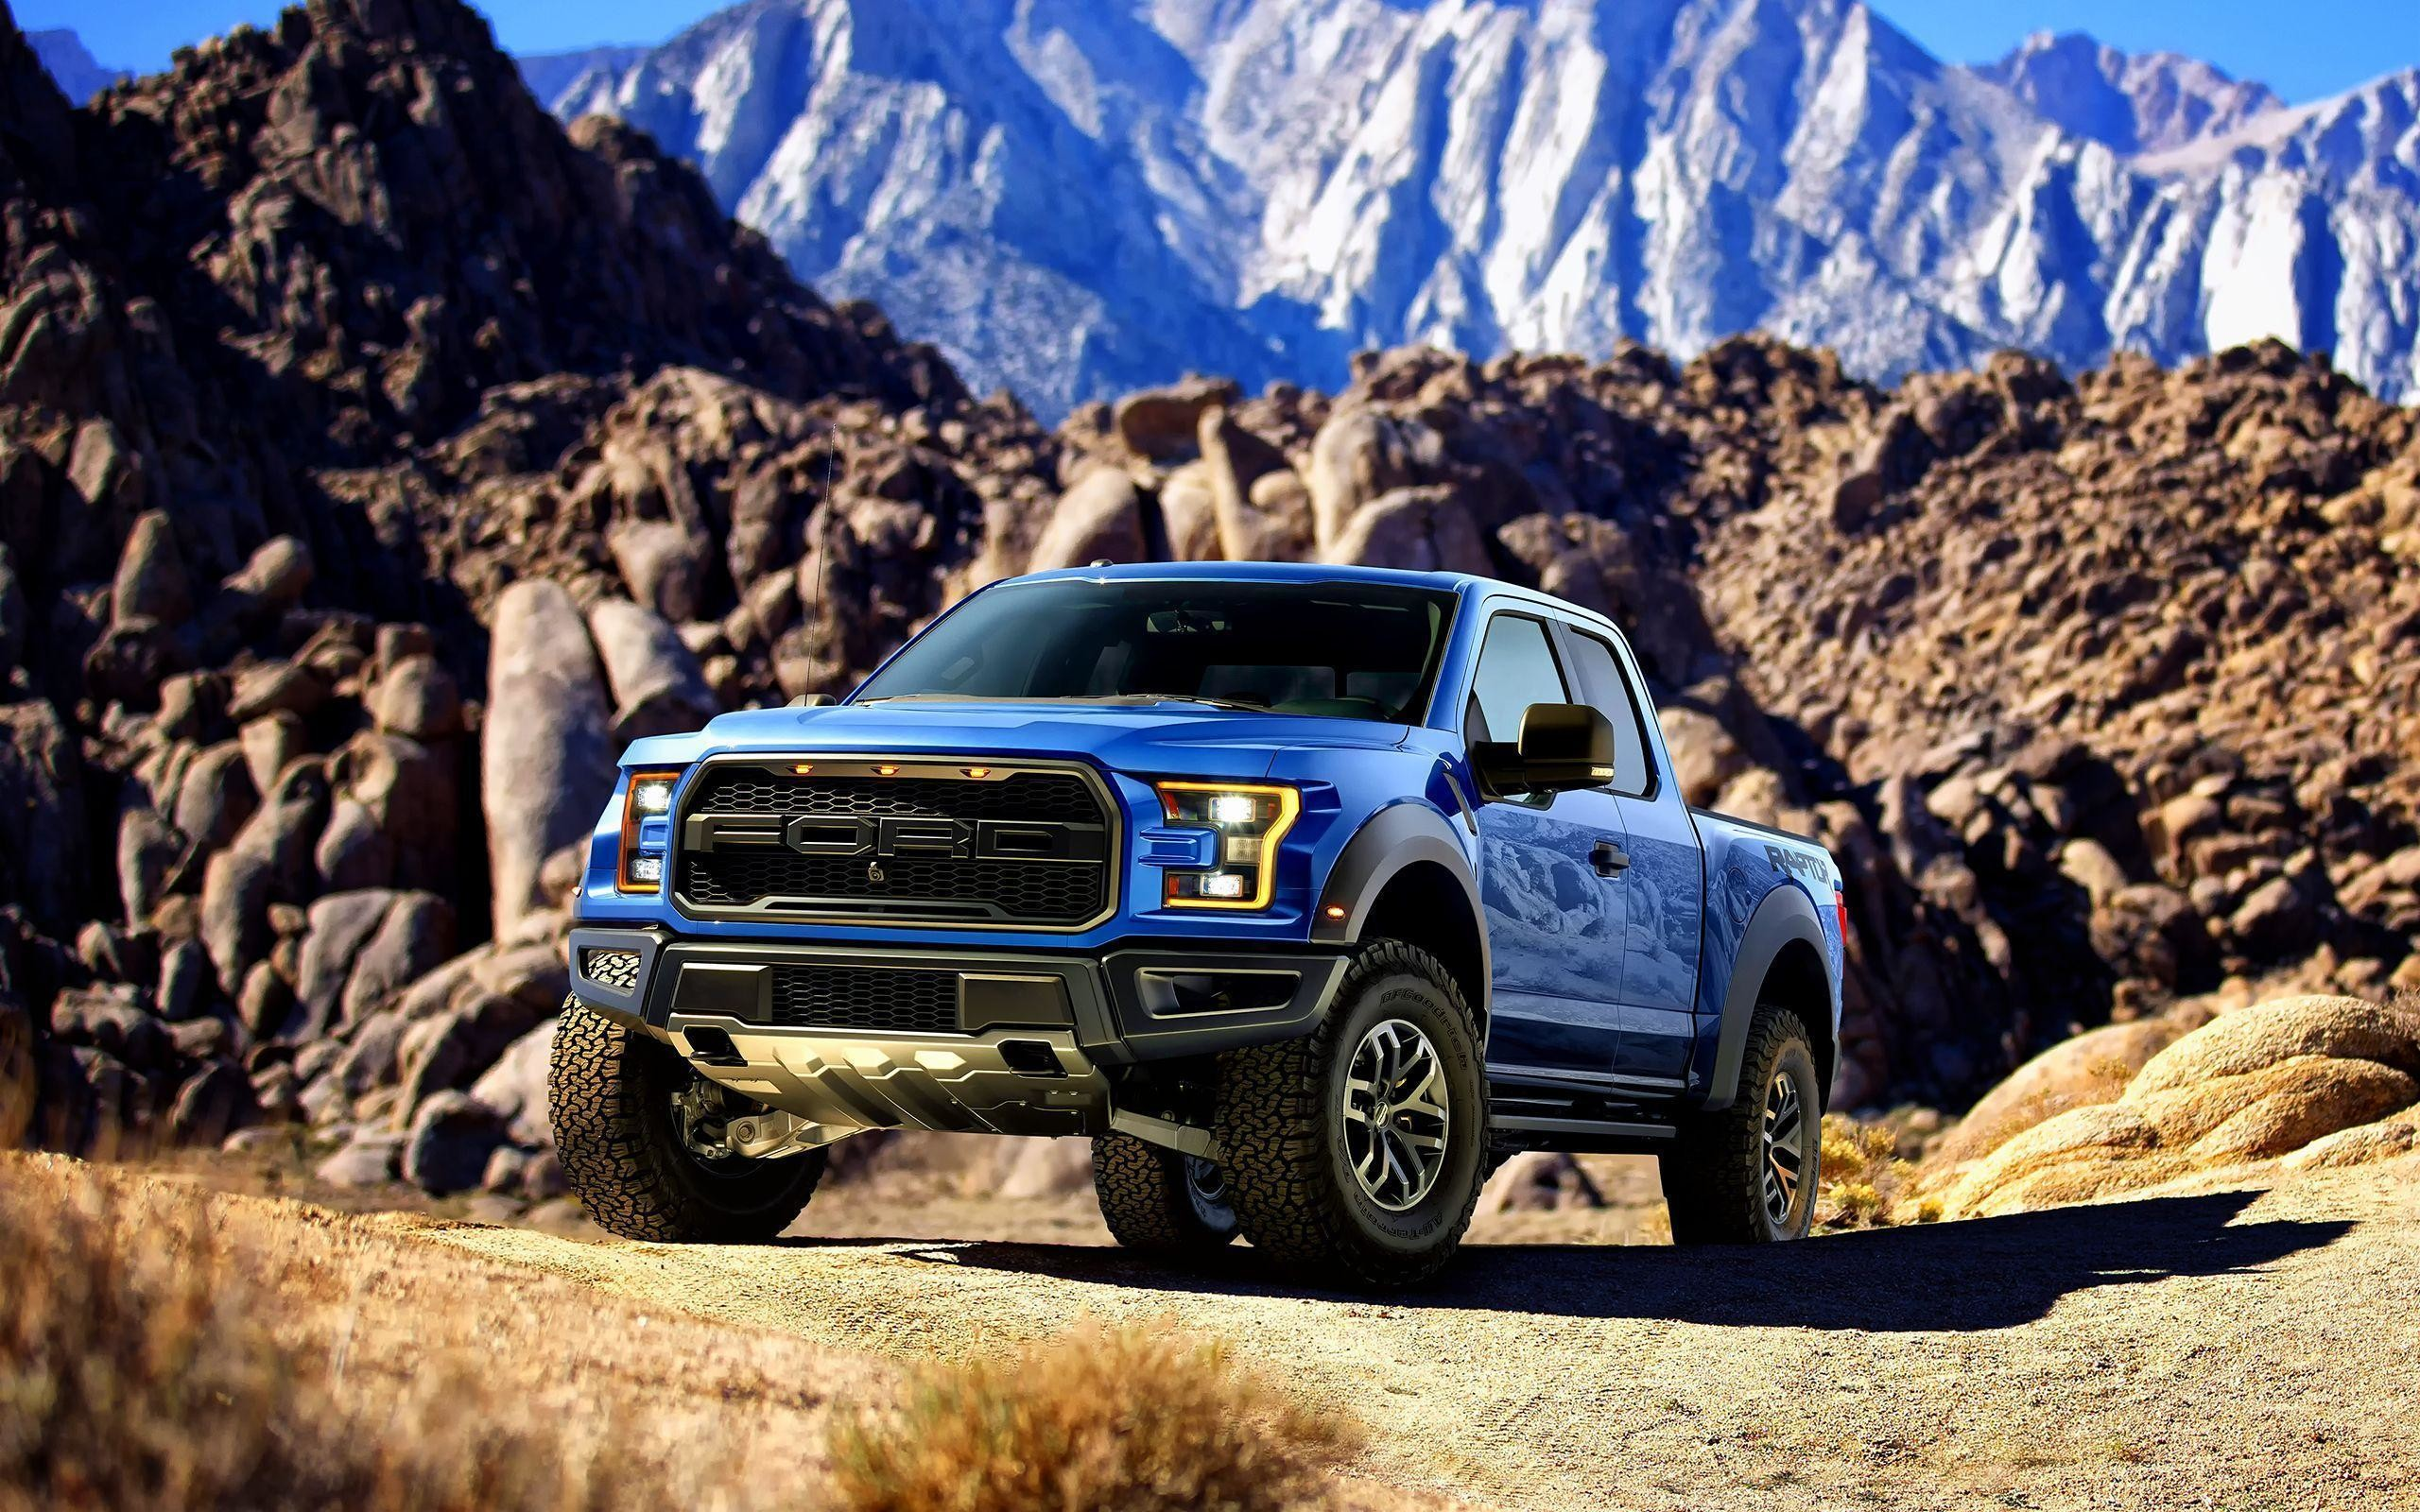 2560x1600 50 Ford Raptor HD Wallpapers | Backgrounds - Wallpaper Abyss